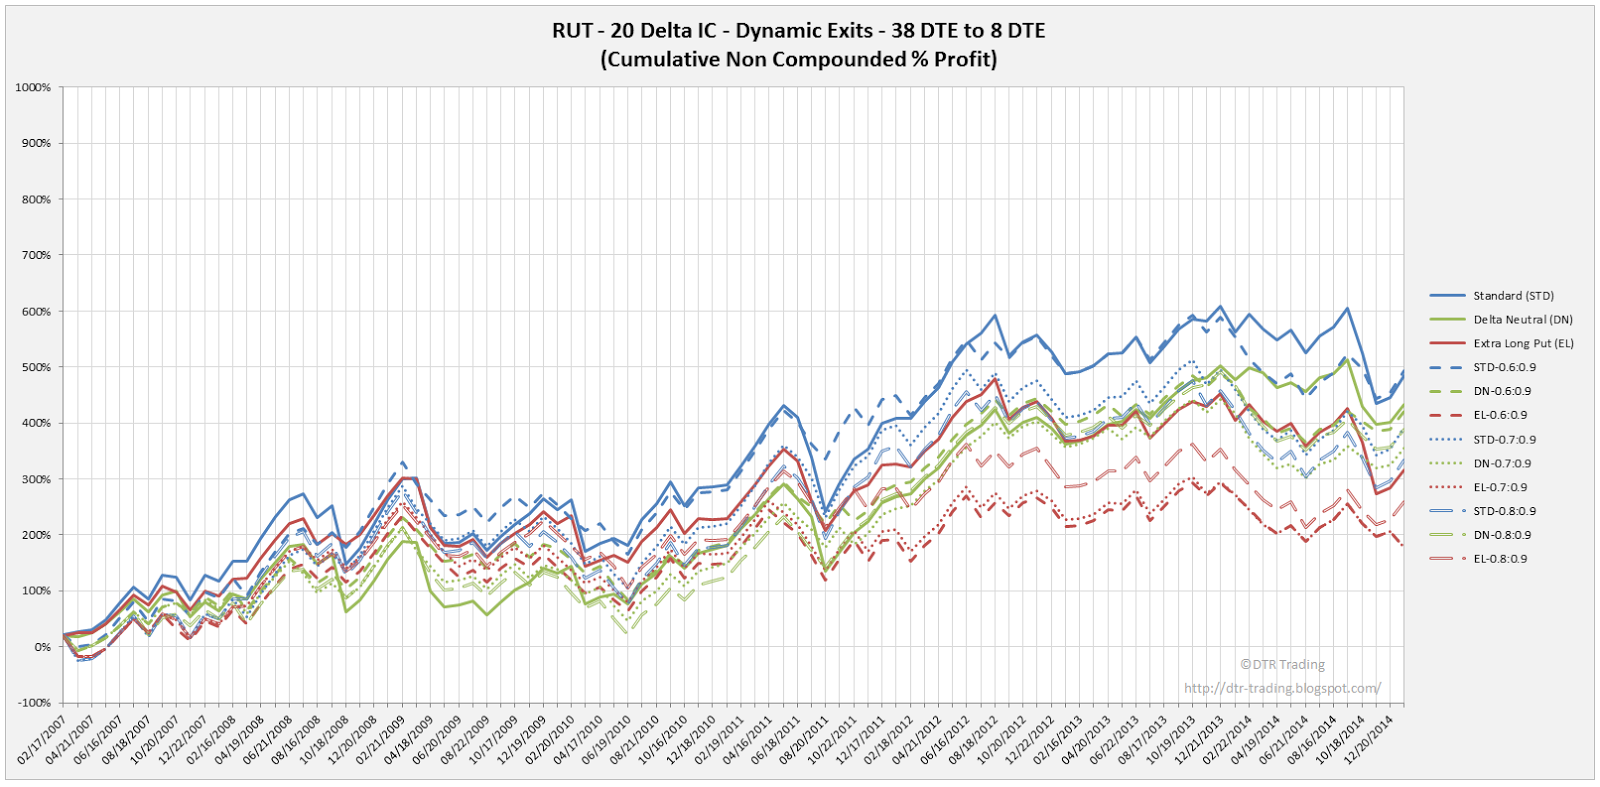 Iron Condor Dynamic Exit Equity Curves RUT 38 DTE 20 Delta Risk:Reward Versions